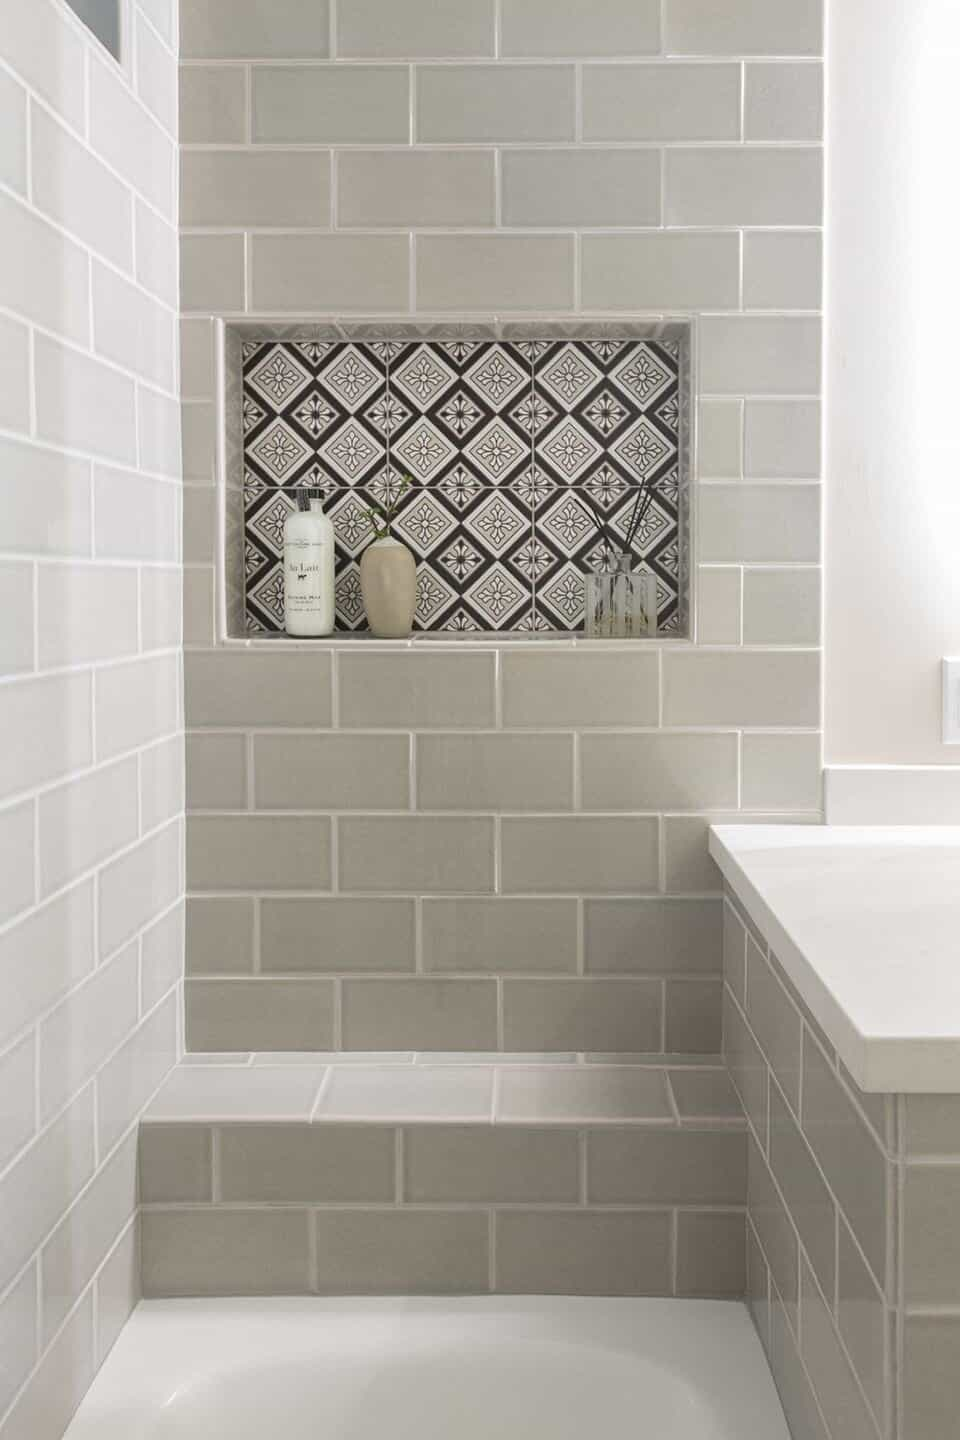 this is a project by nina jizhar with minimal and patterned tiles